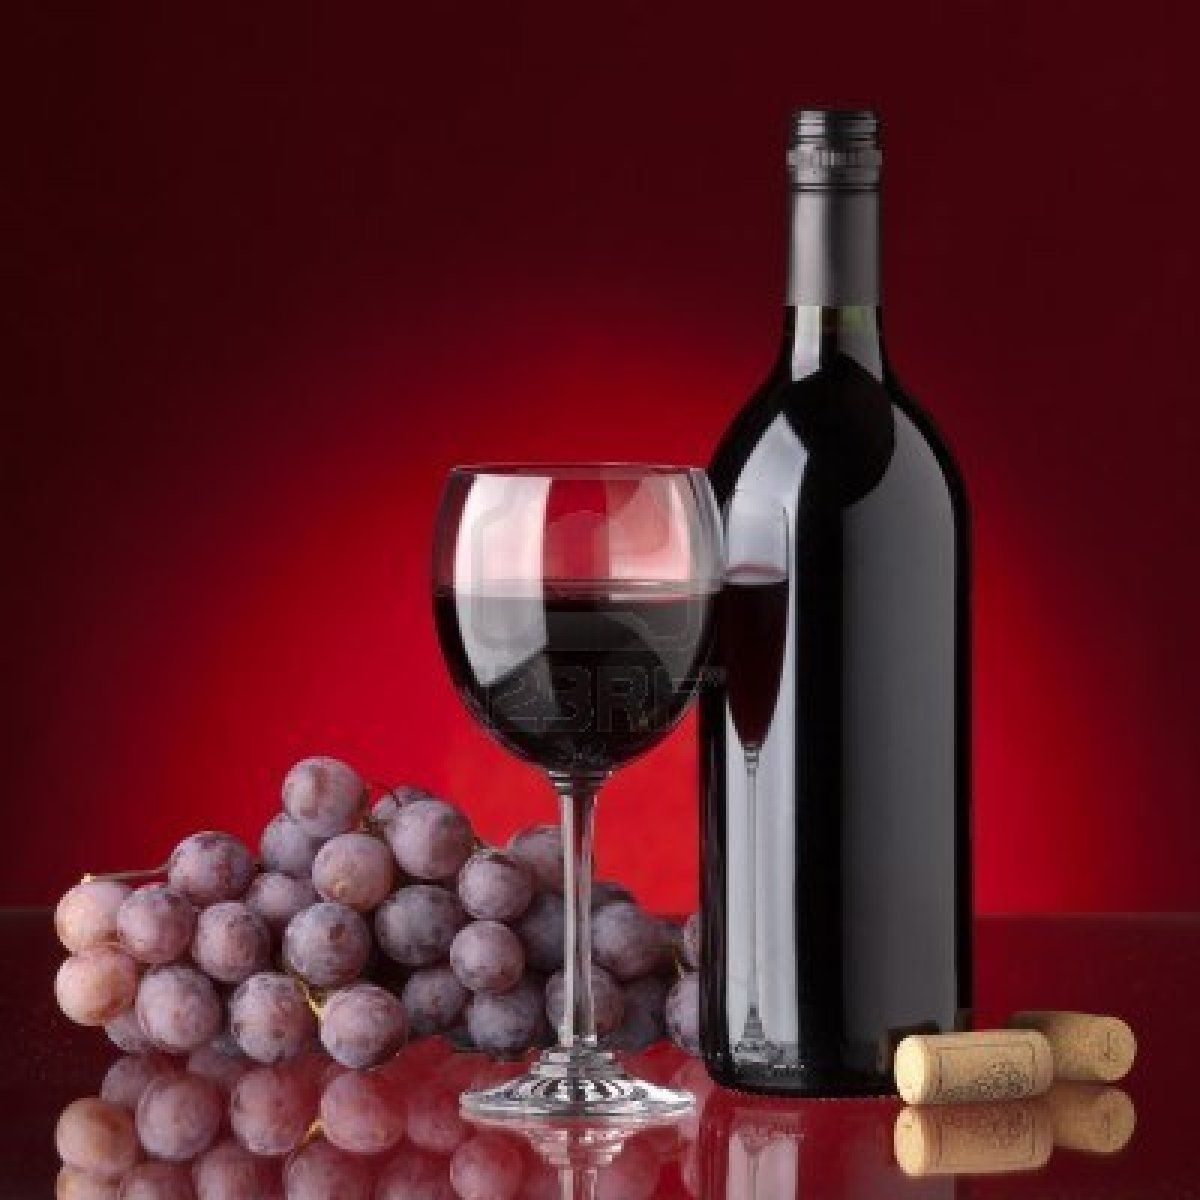 Bottle And Glass Of Red Wine Grape And Cork On A Red Background Red Wine Wine Wallpaper Wine Drinks